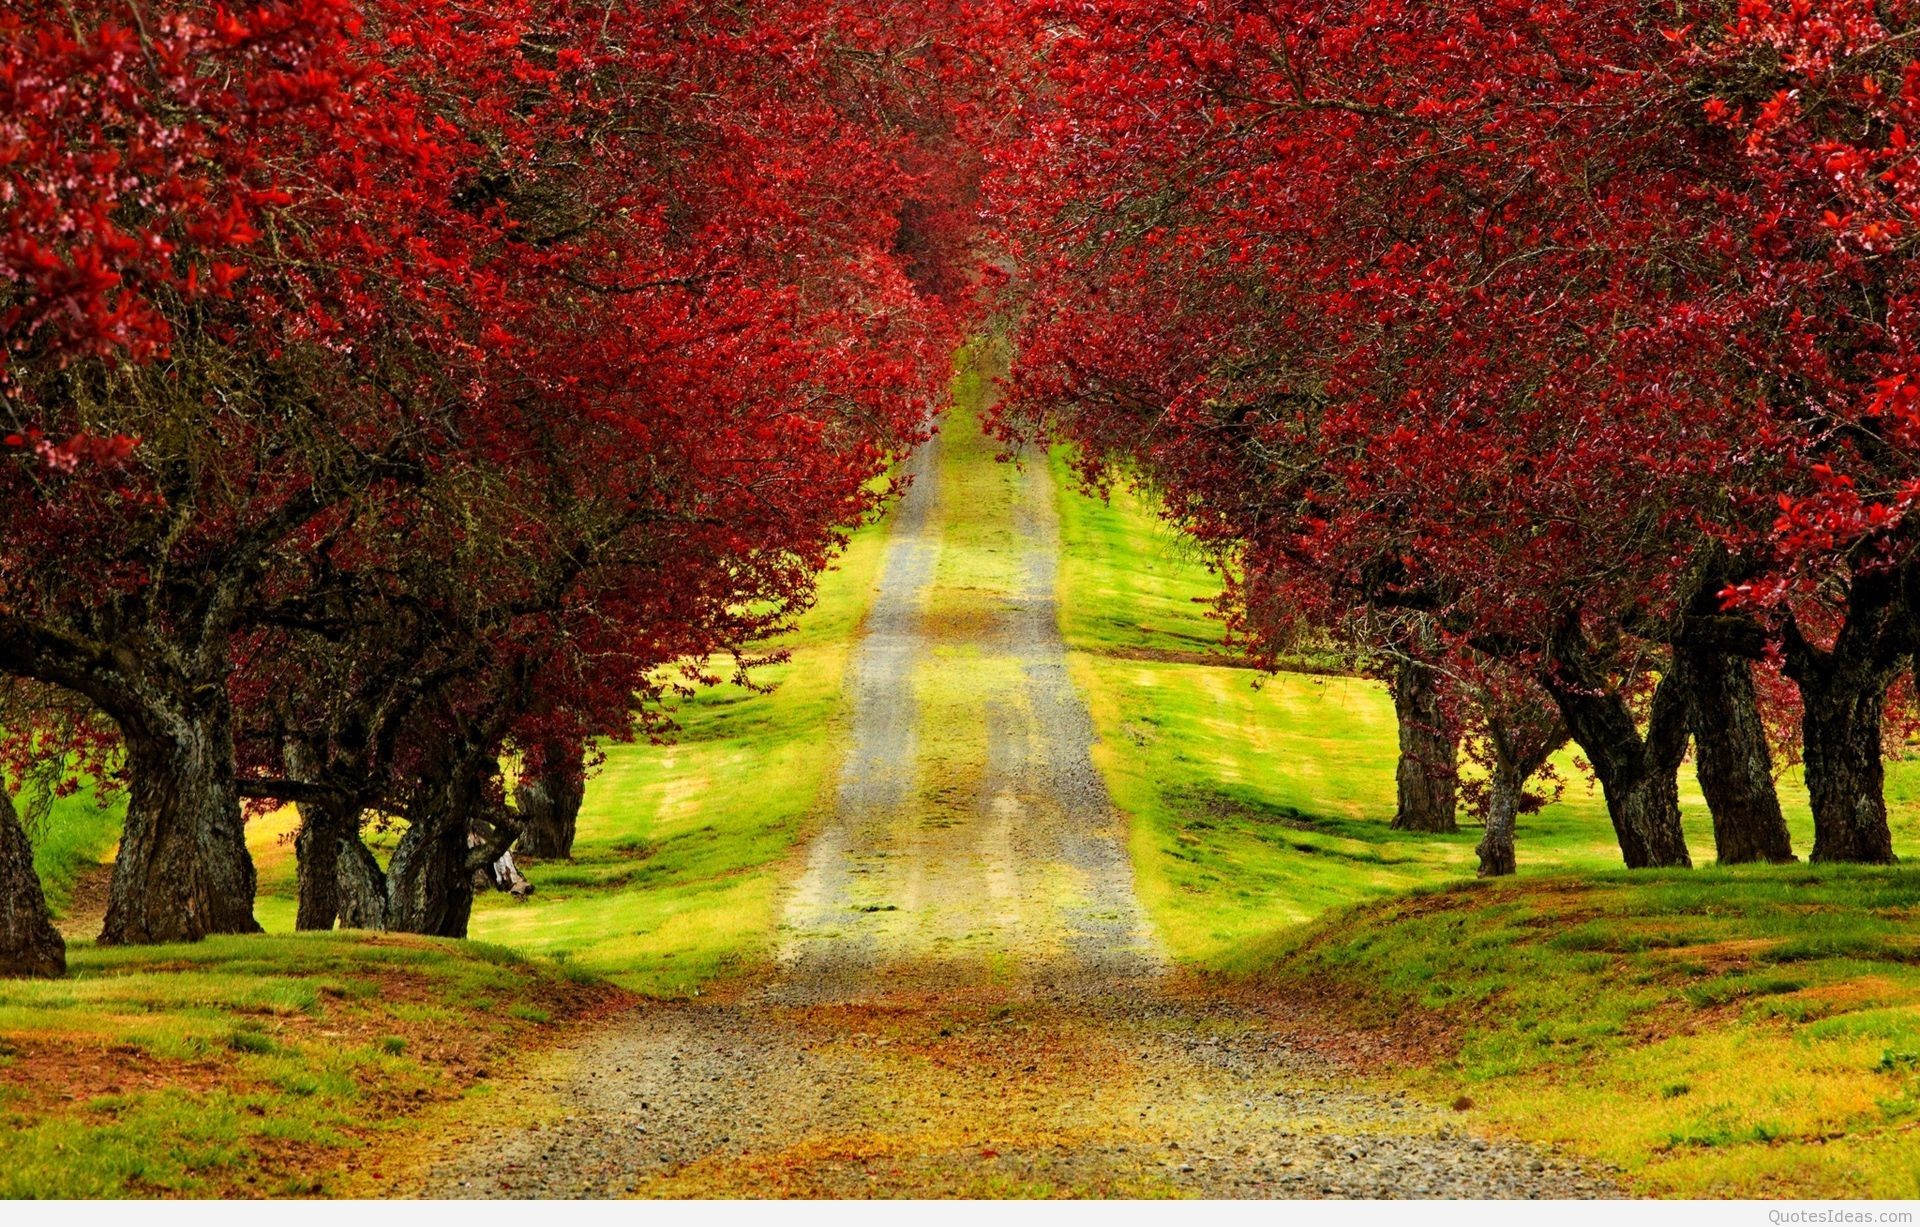 … landscape-charming-red-trees-autumn-long-road-hd- …